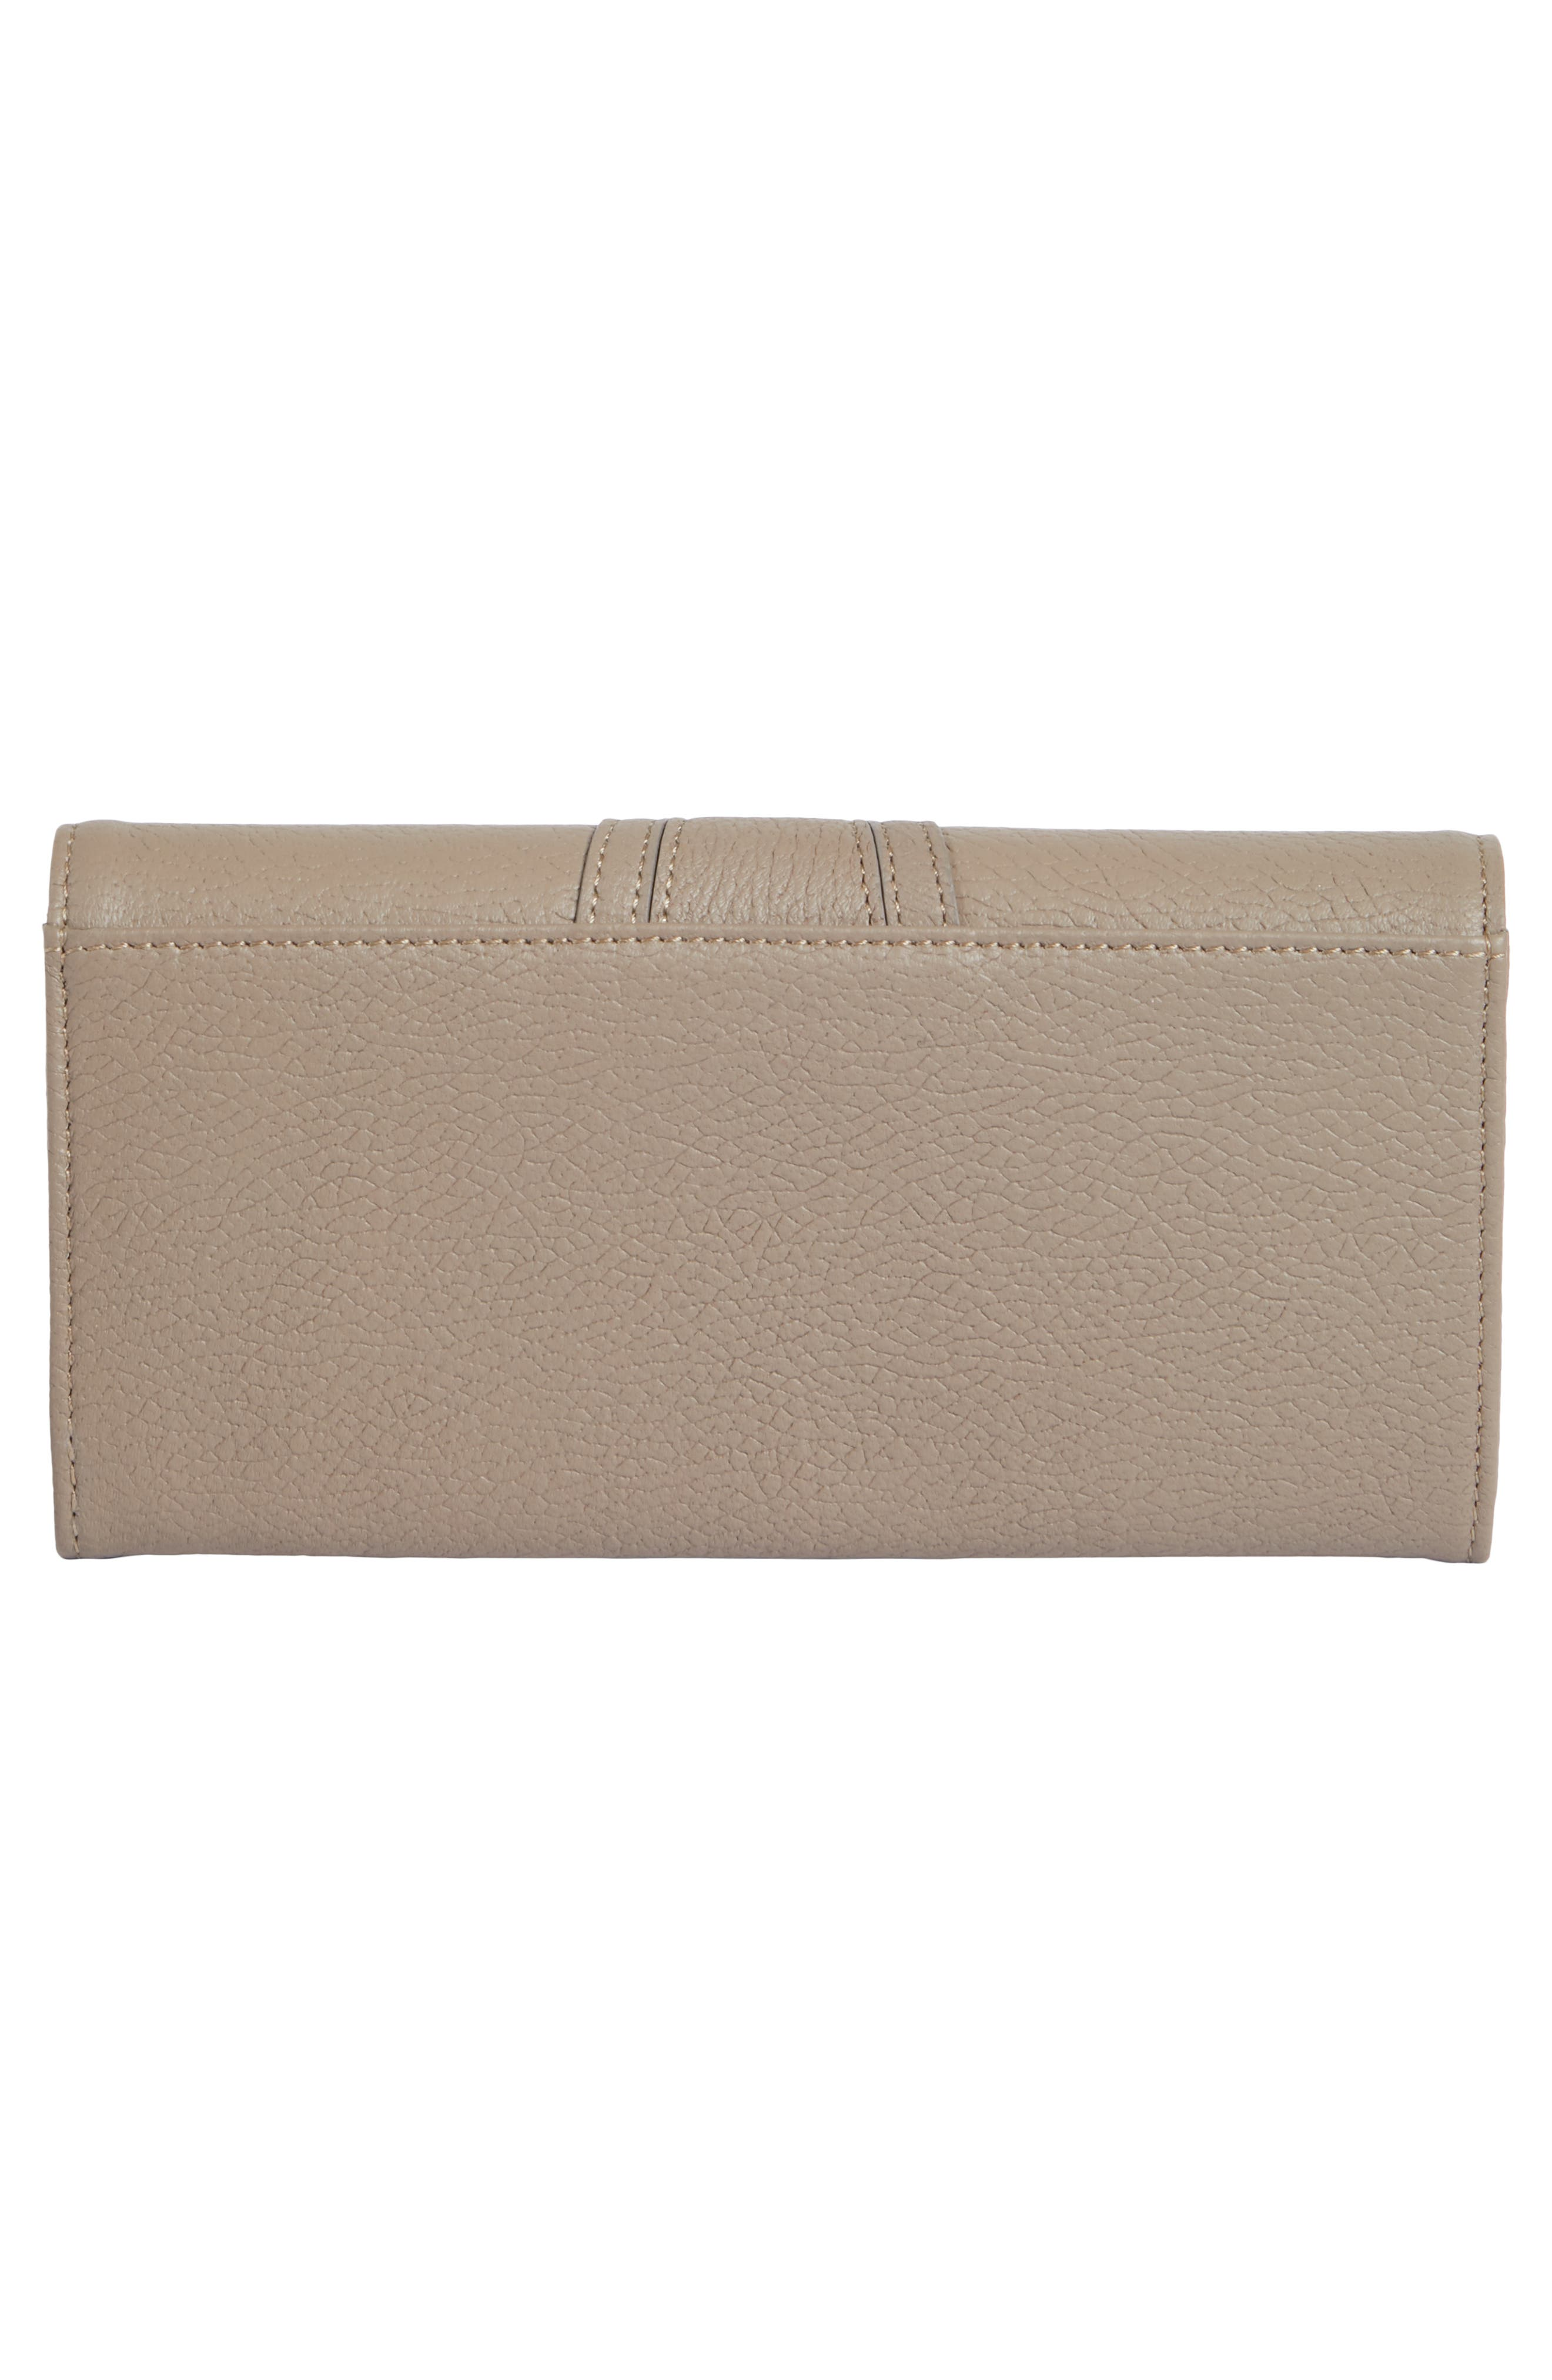 Hana Leather Wallet,                             Alternate thumbnail 4, color,                             MOTTY GREY